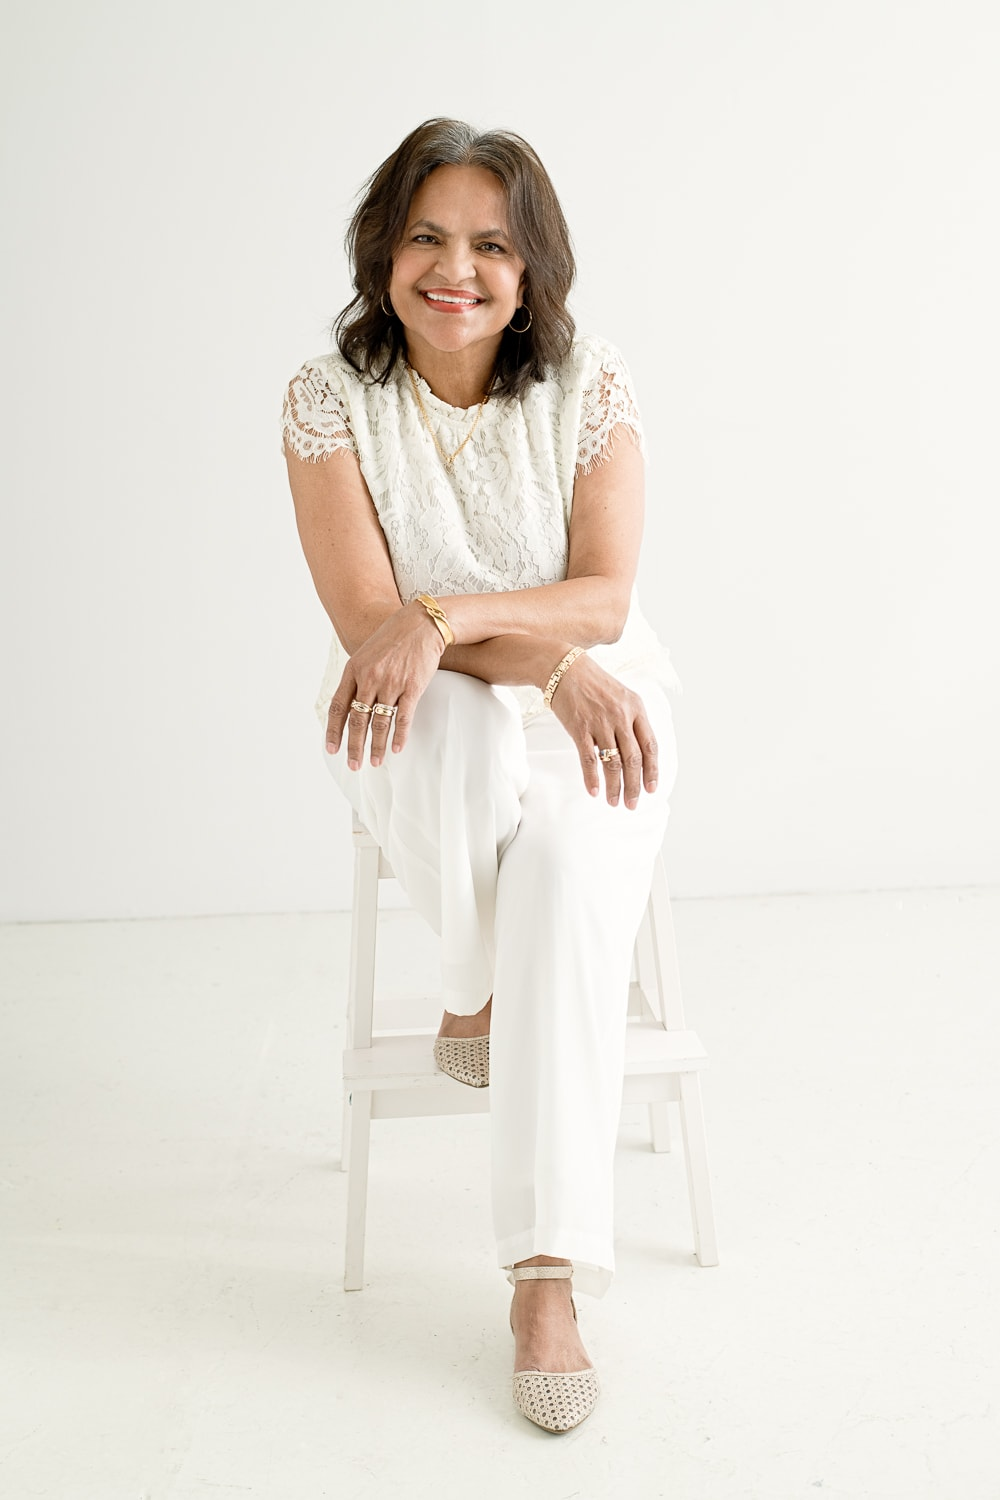 seated woman wearing white against a white background. 50 over 50 project